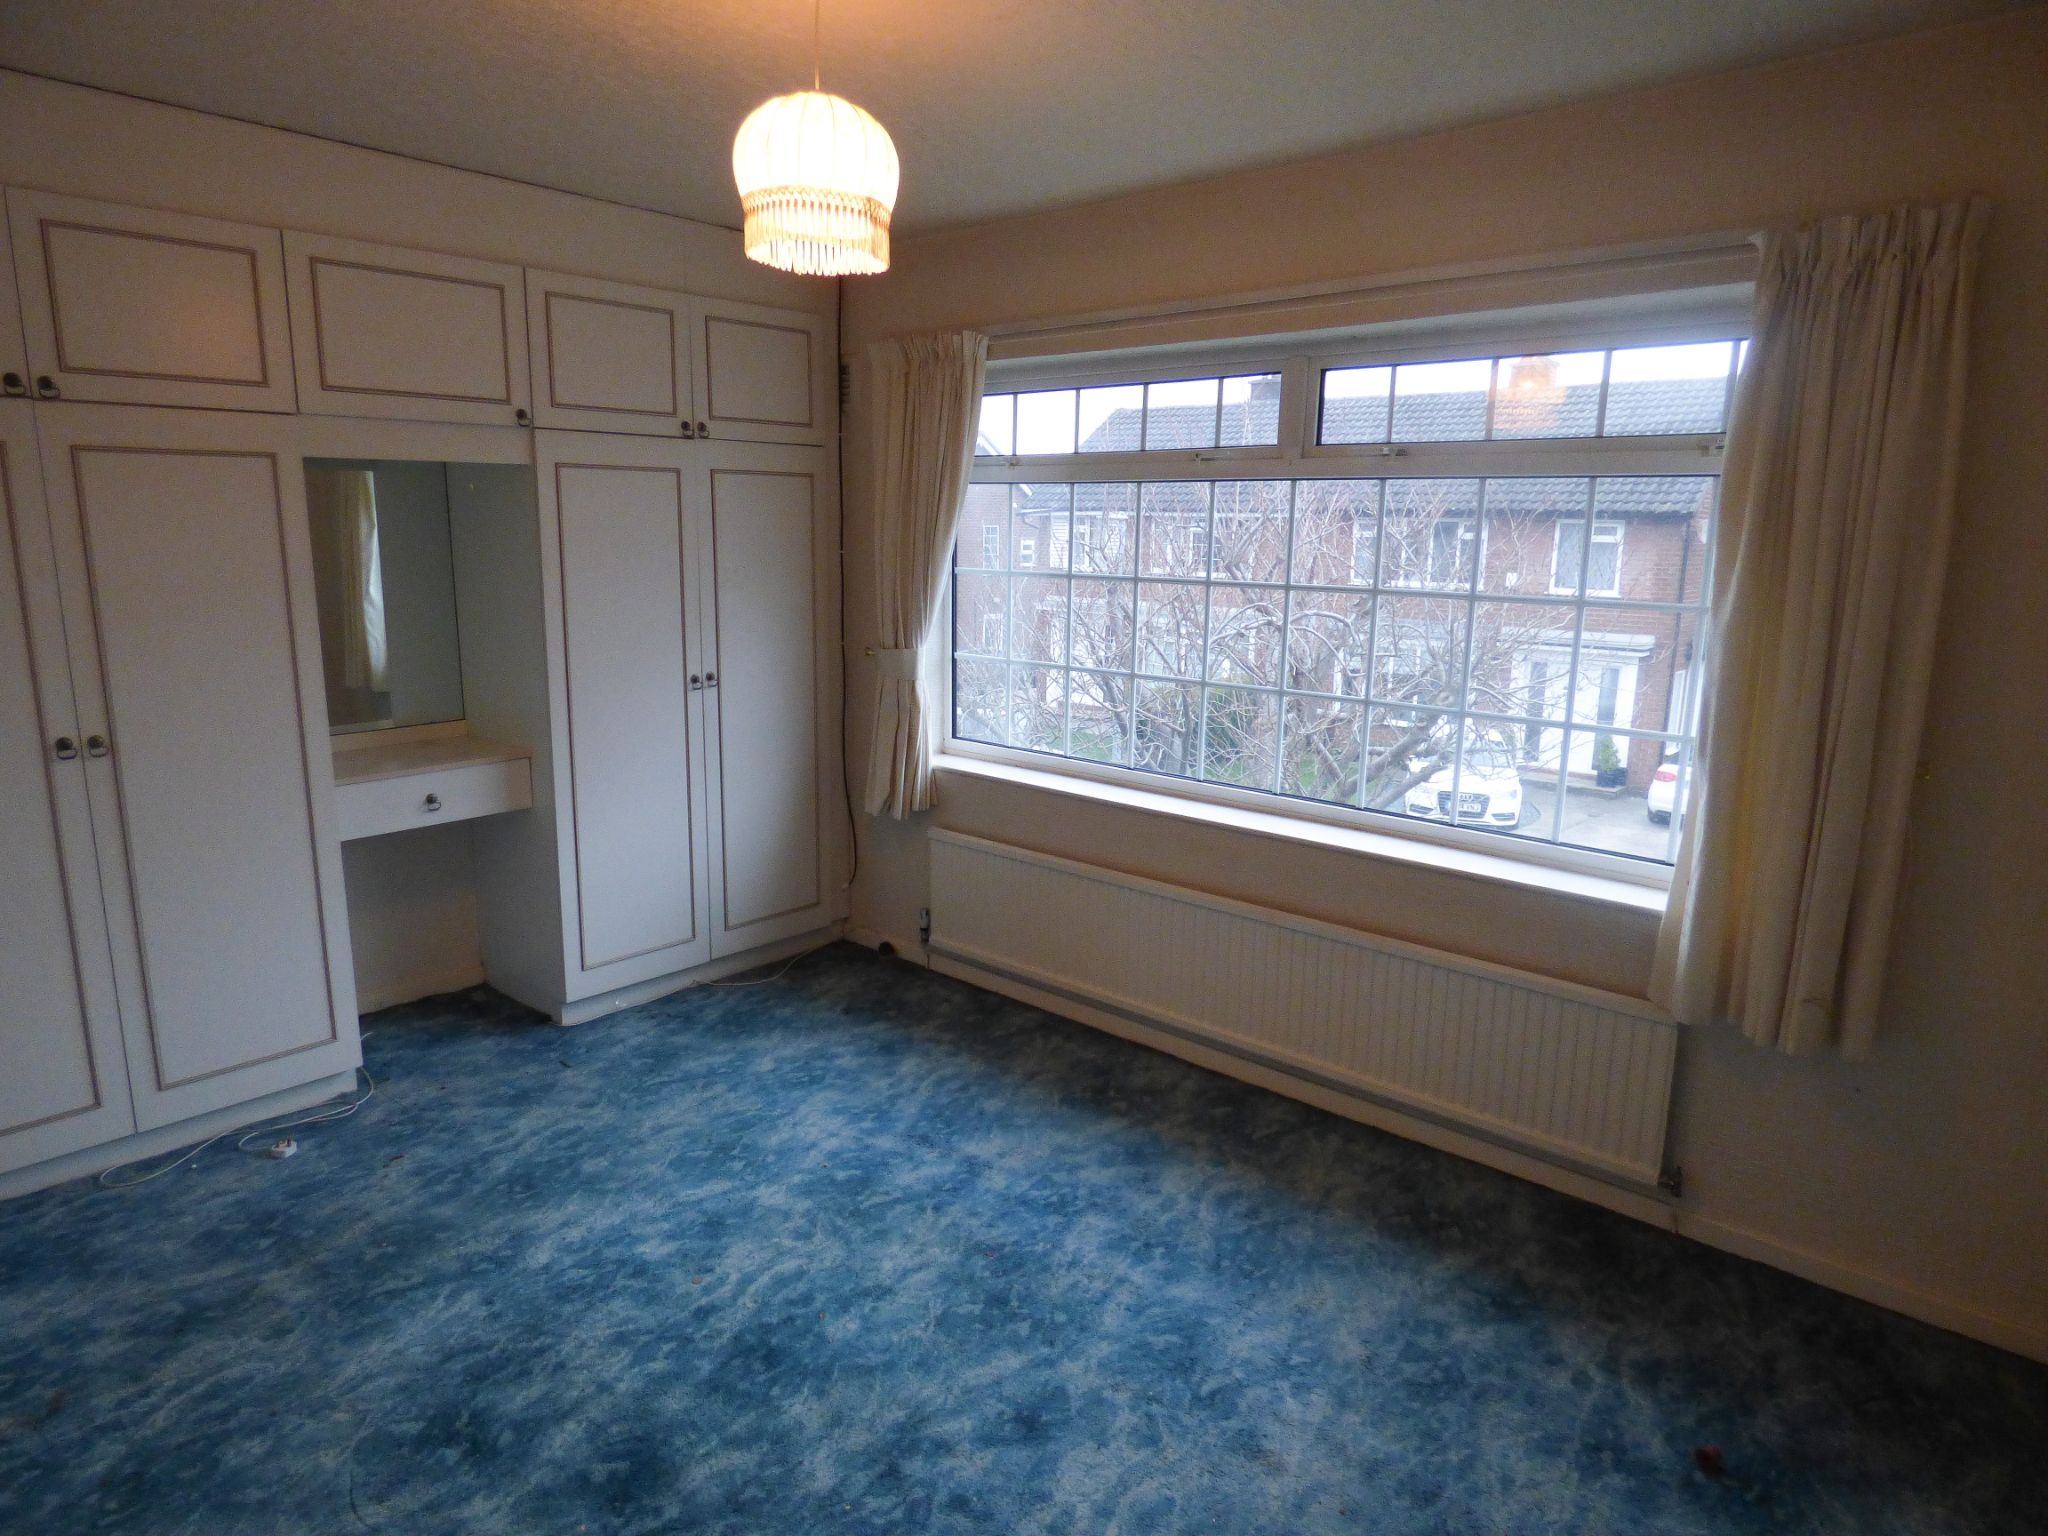 3 Bedroom Semi-detached House For Sale - 7